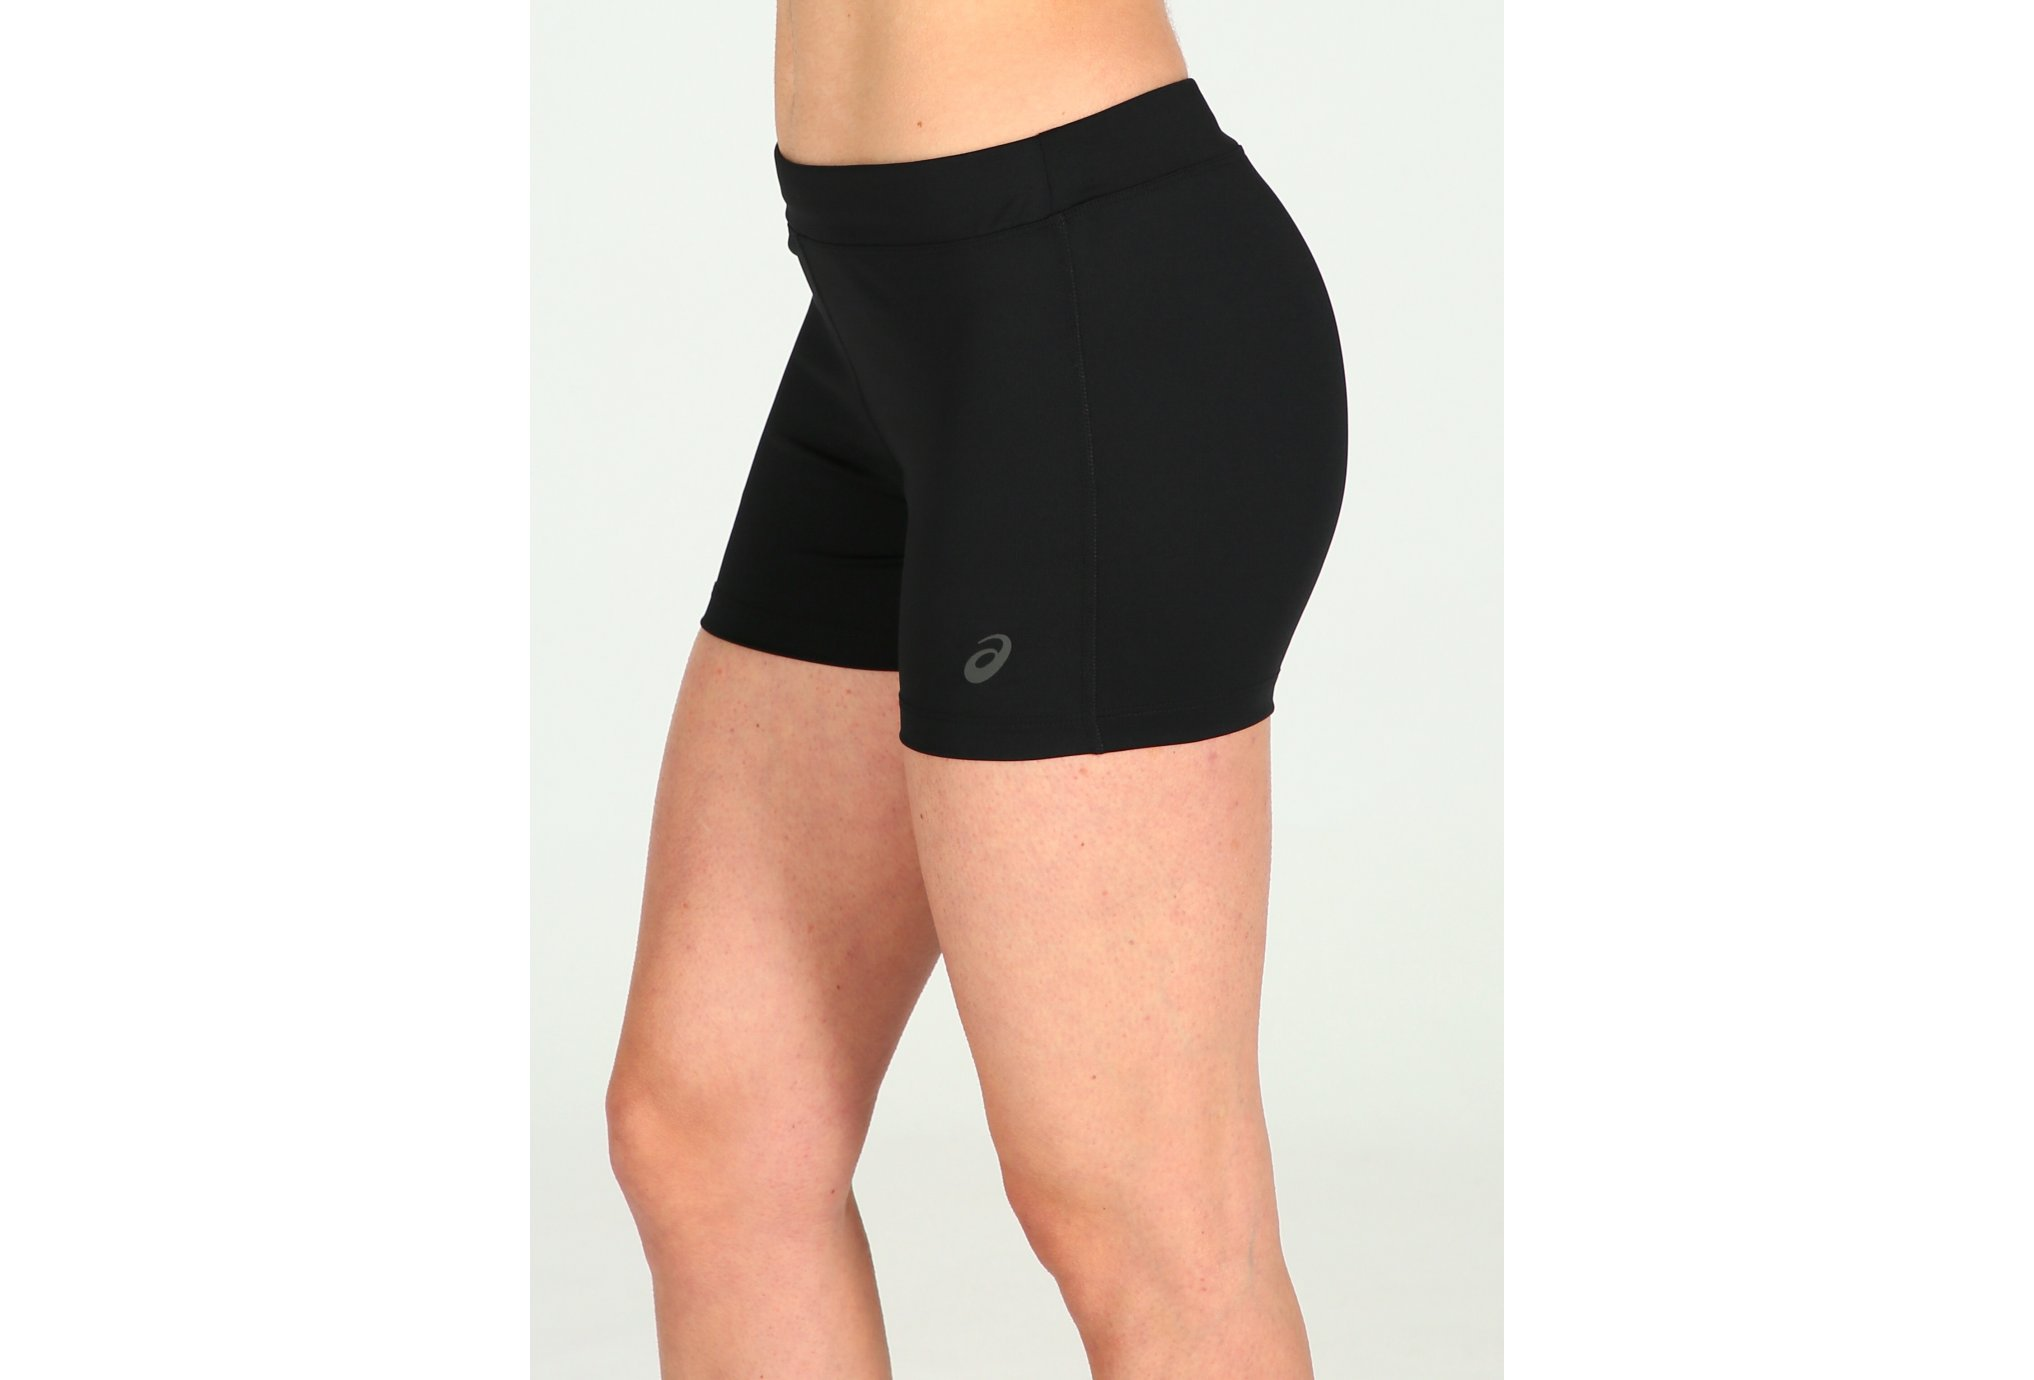 Asics Mallas cortas Hot Pant vêtement running femme